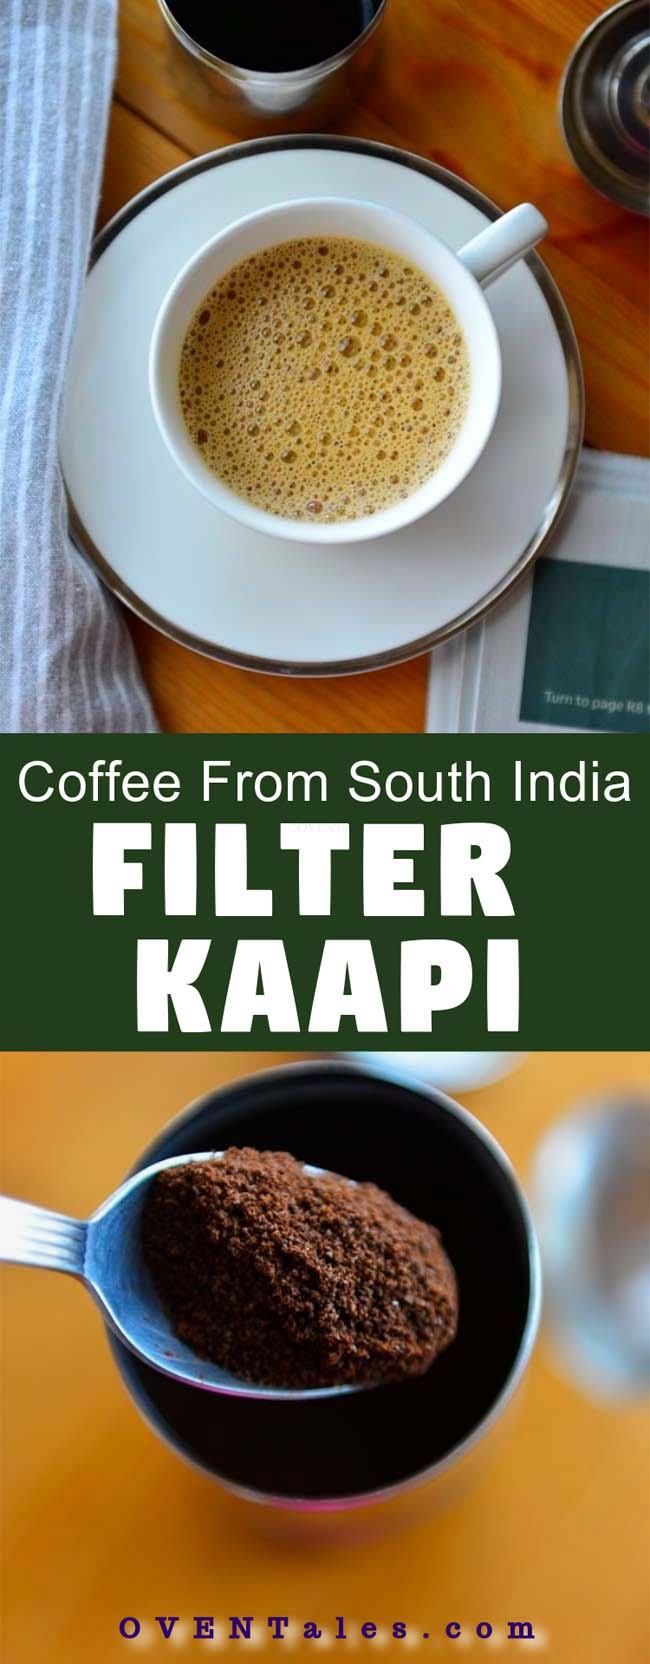 South Indian Filter Coffee - Aromatic percolated coffee served with hot frothy milk